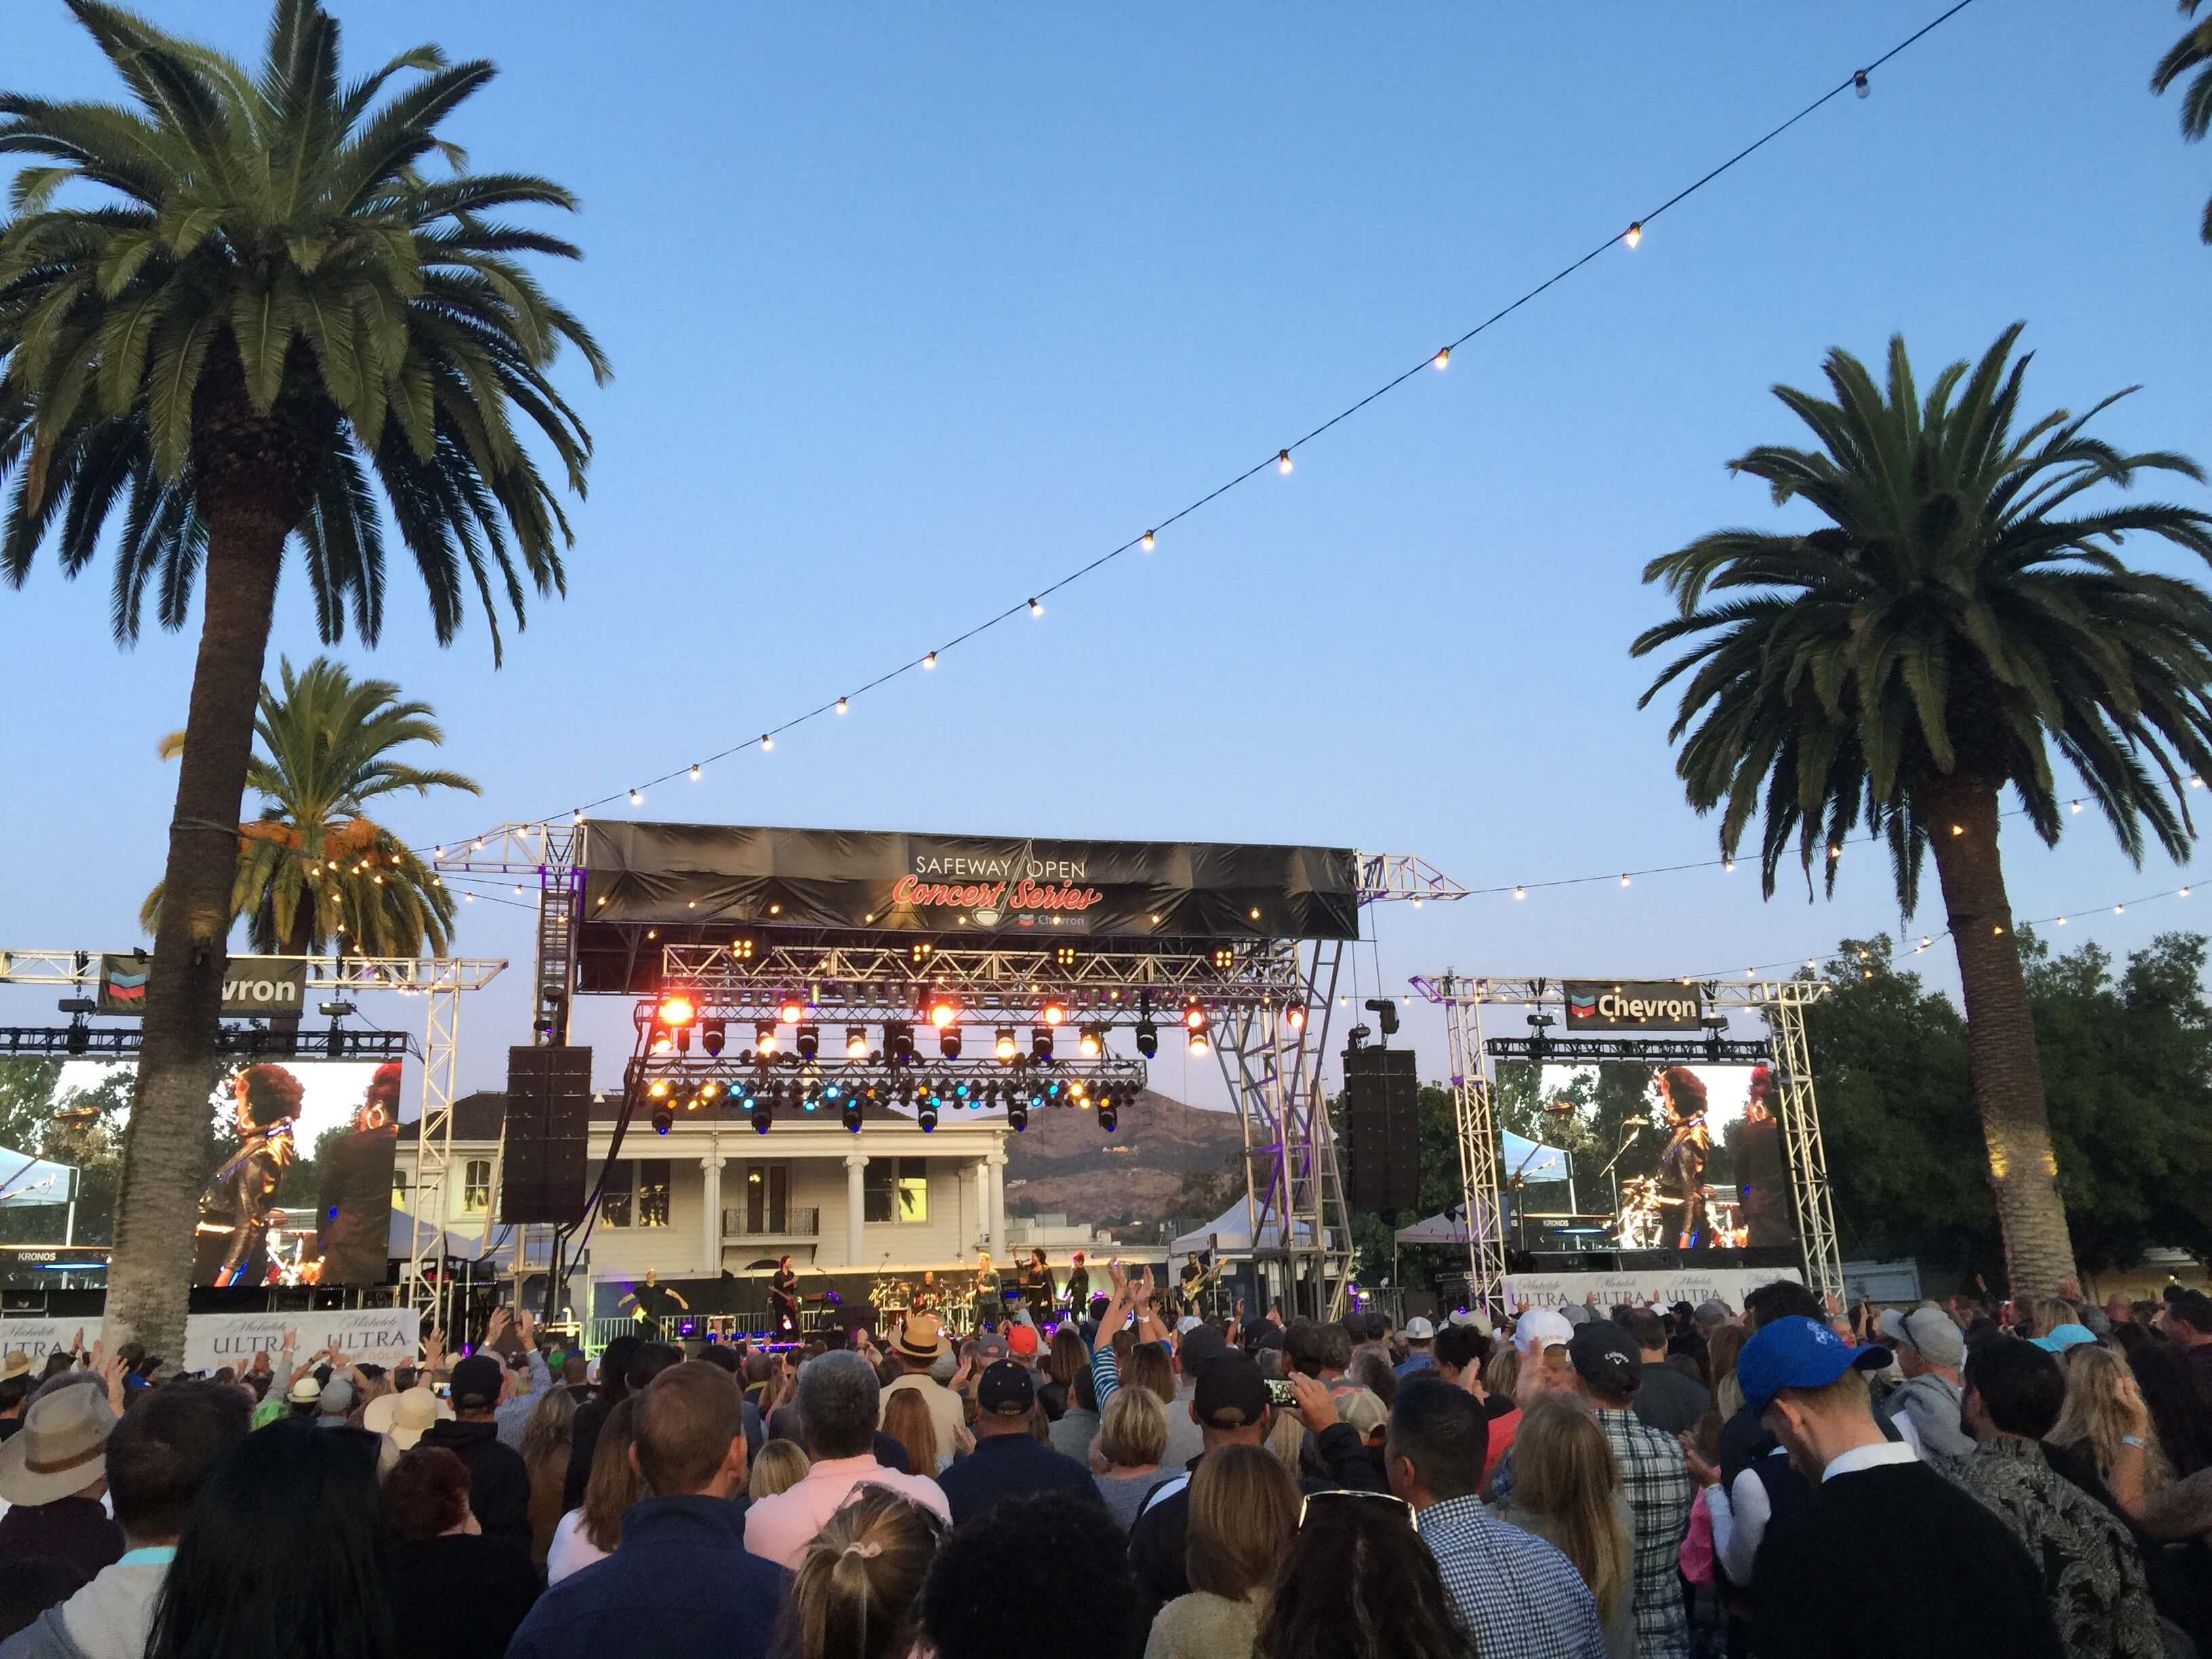 Golf Music Concert at The Safeway Open